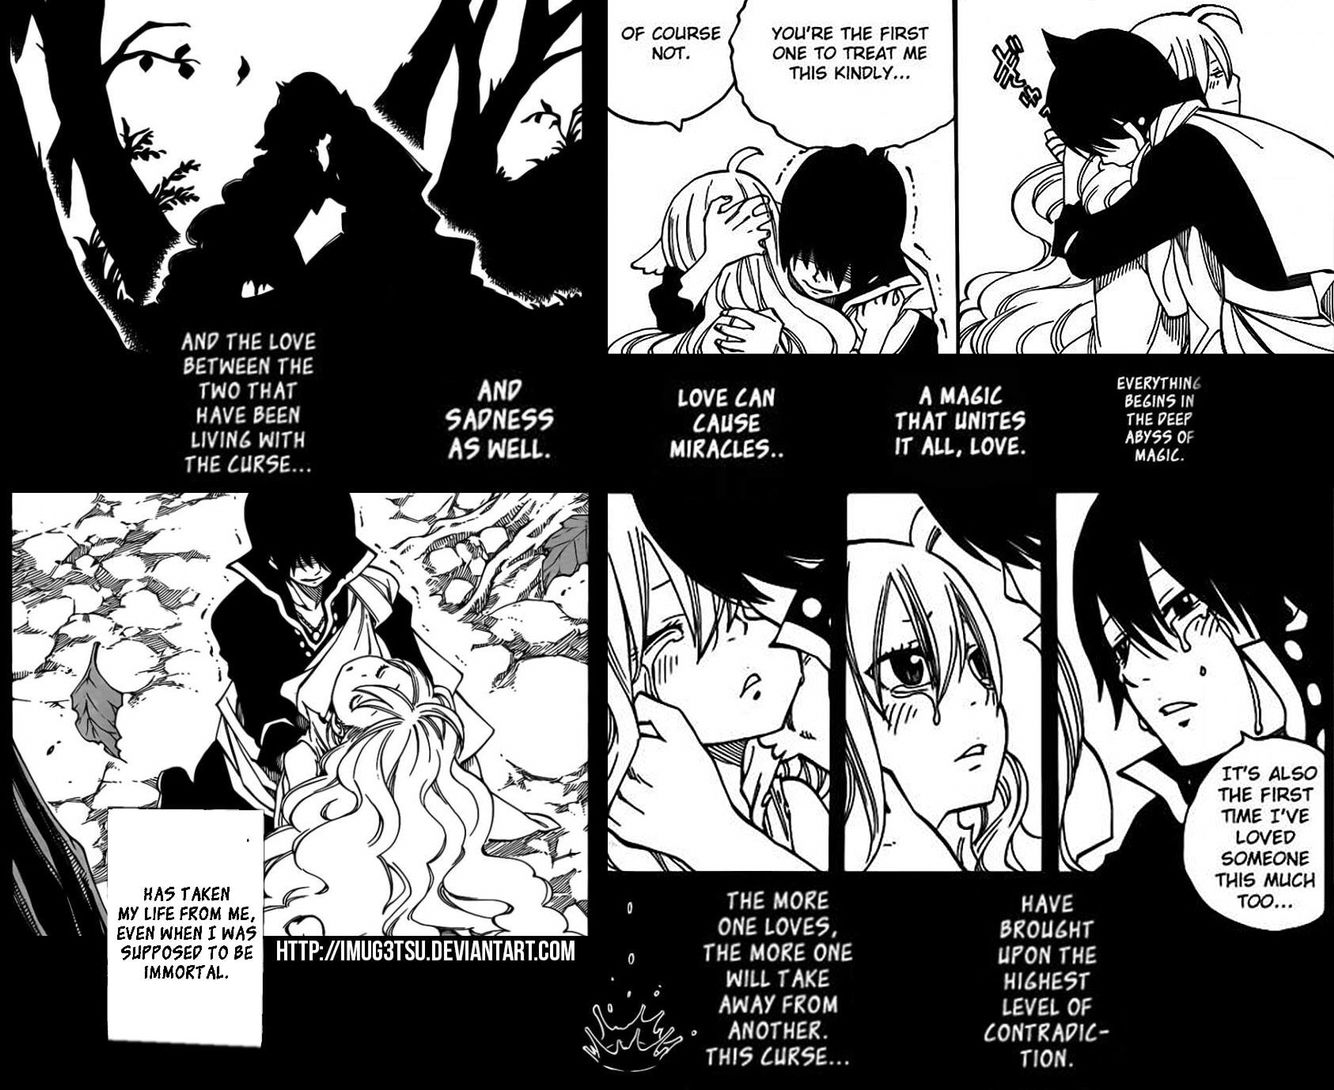 People, see here, THE BEGINNING THE FIRST CANON COUPLE OF FAIRY! And also the end of it... (2 pages later)